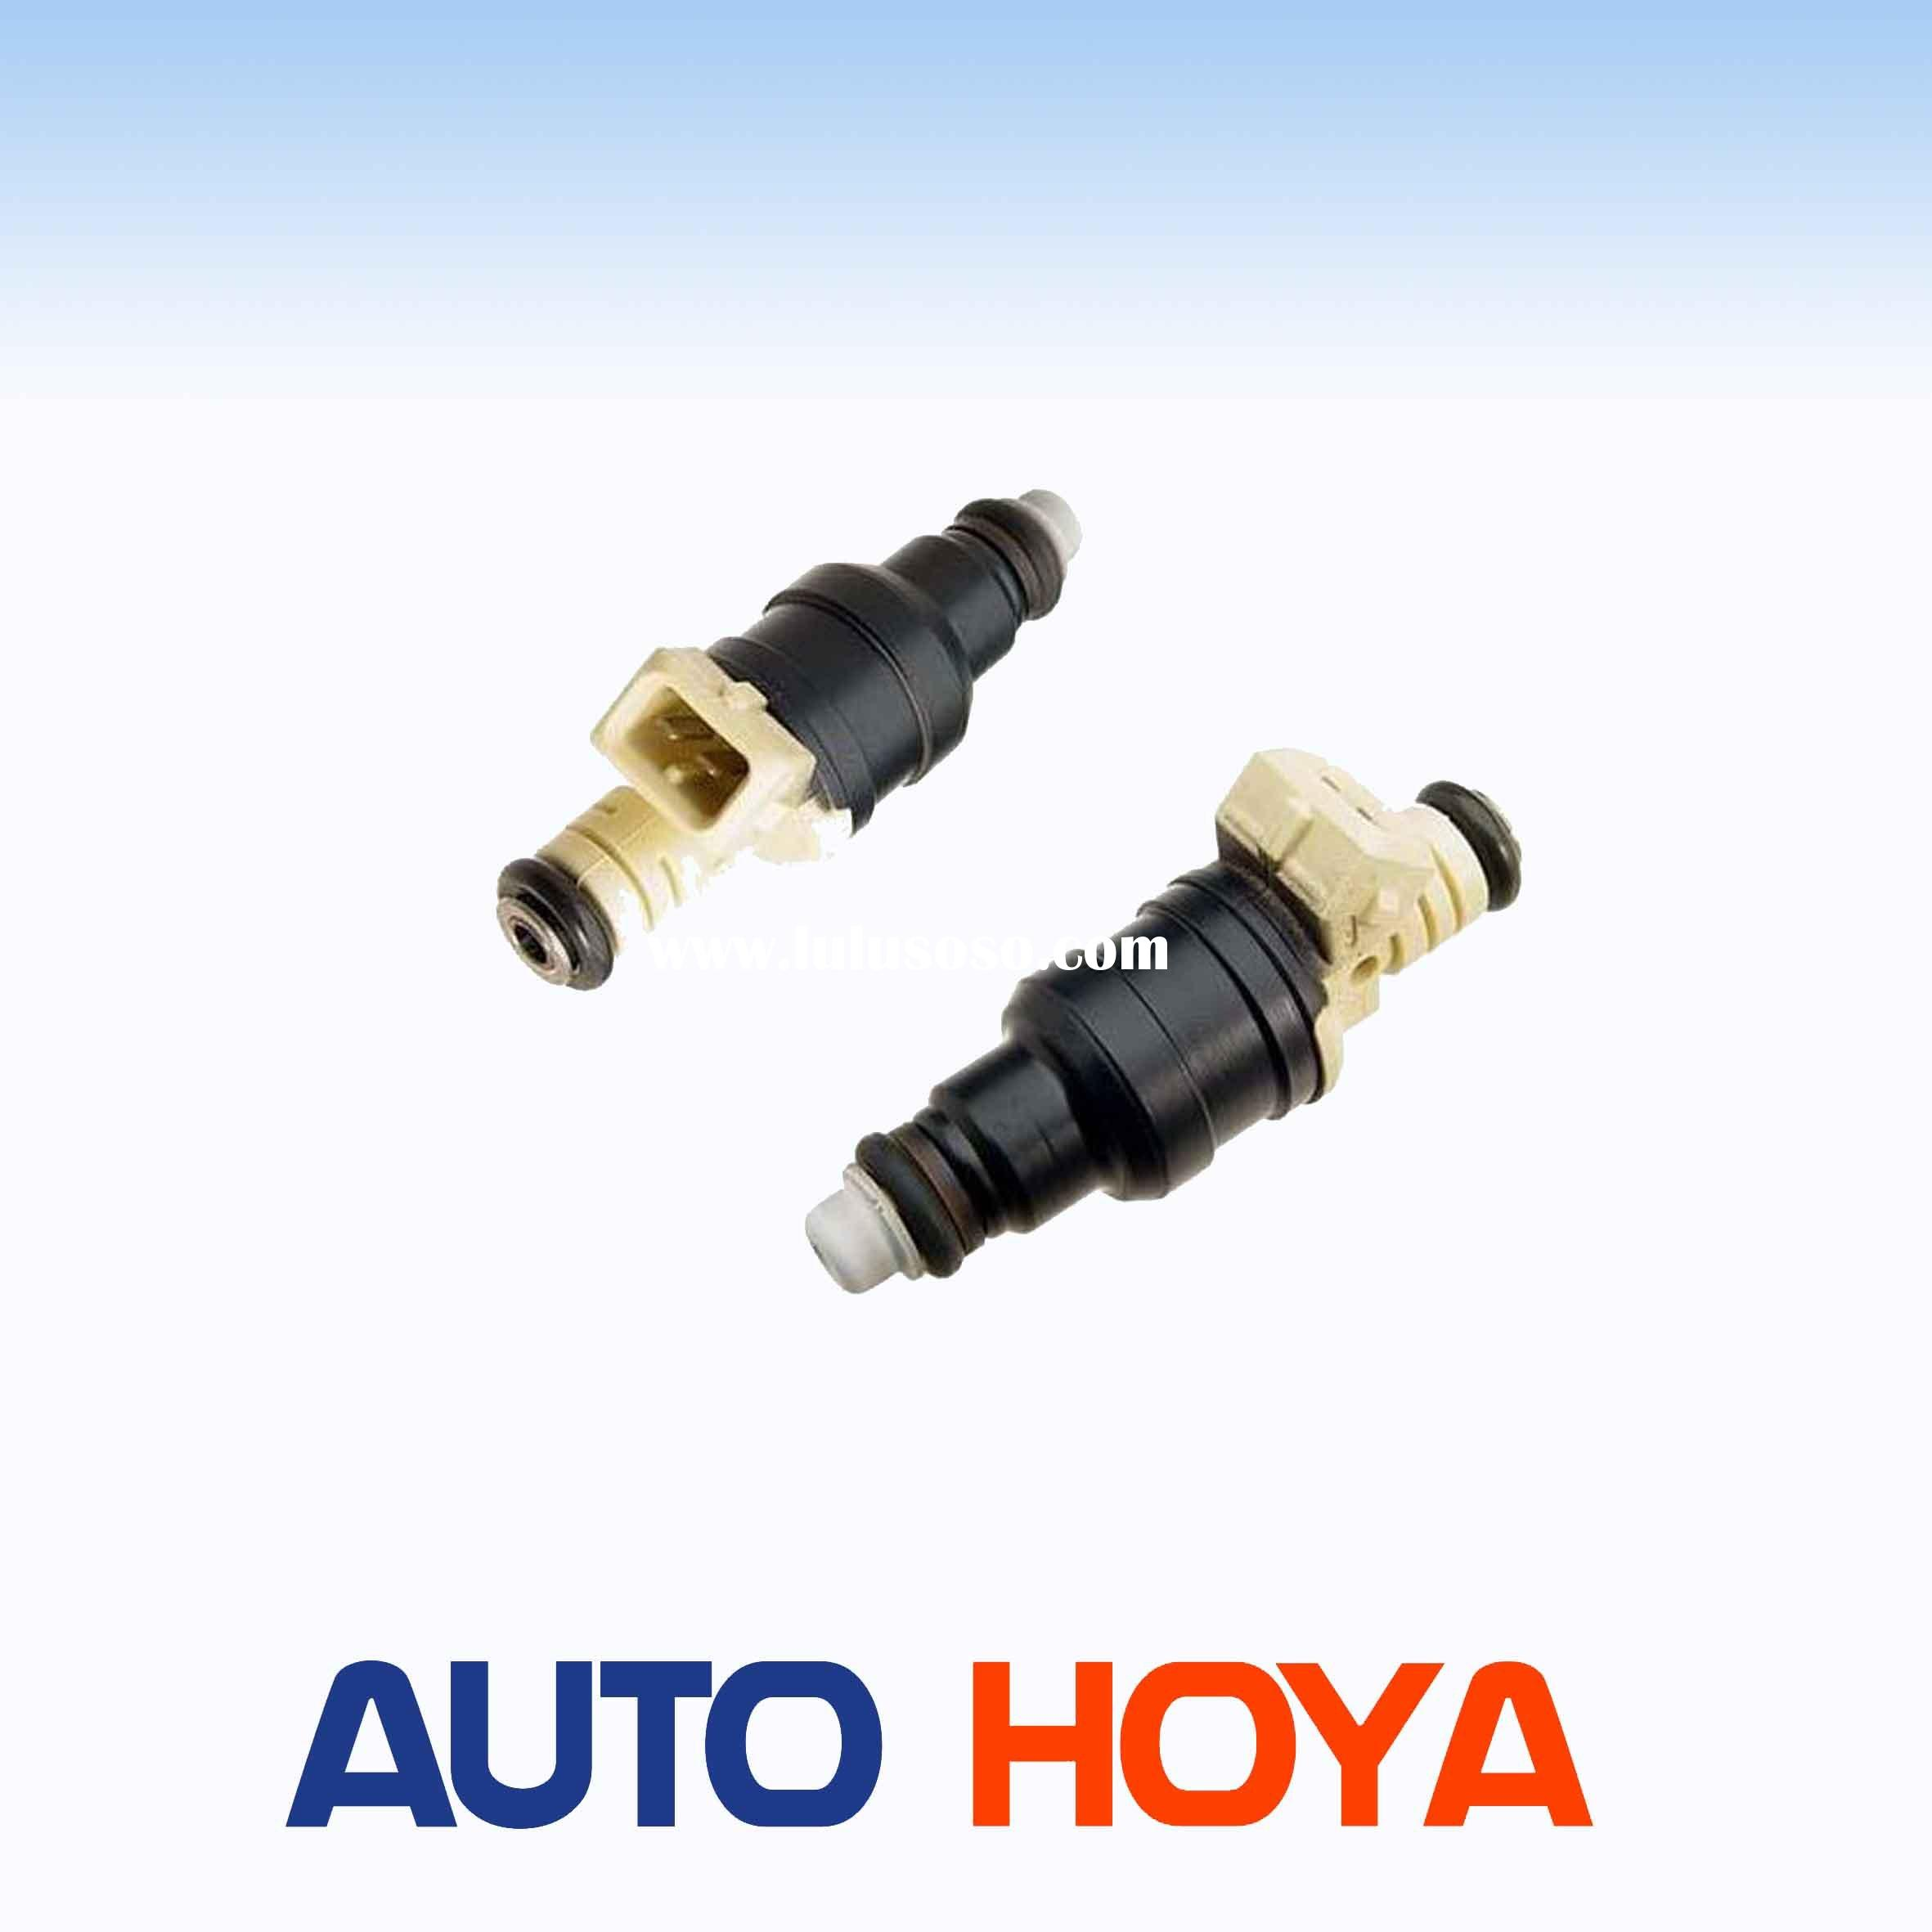 How To Remove Clean Or Bypass An Egr Valve From A Trafic Vivaro Primastar Diesel Van besides 186773 2008 Toyota Tundra Pcv Valve Location in addition 2005 Nissan Maxima Has No Transmission Filter besides Ny Fashion Week Puppies On The Runway likewise . on toyota tacoma fuel filter clogged